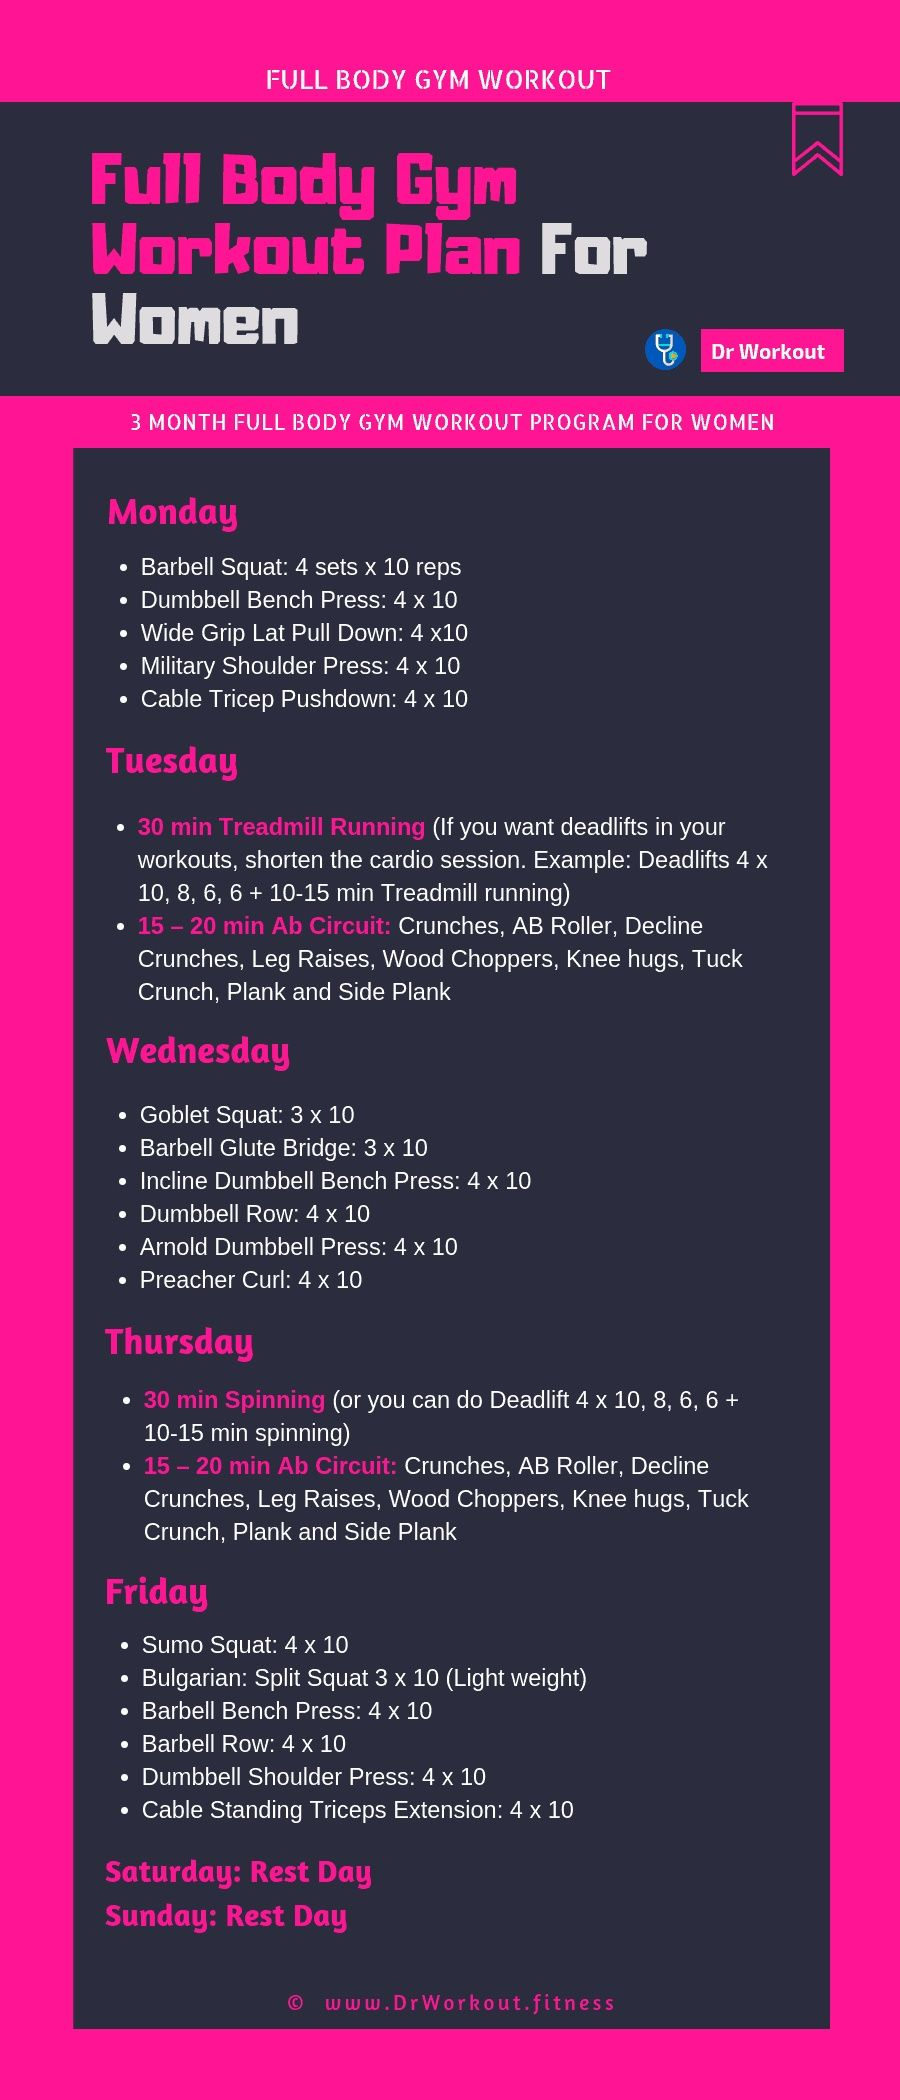 Full Body Gym Workout Plan For Women #workout #workoutplan #fitness #women #gym Informations About F...